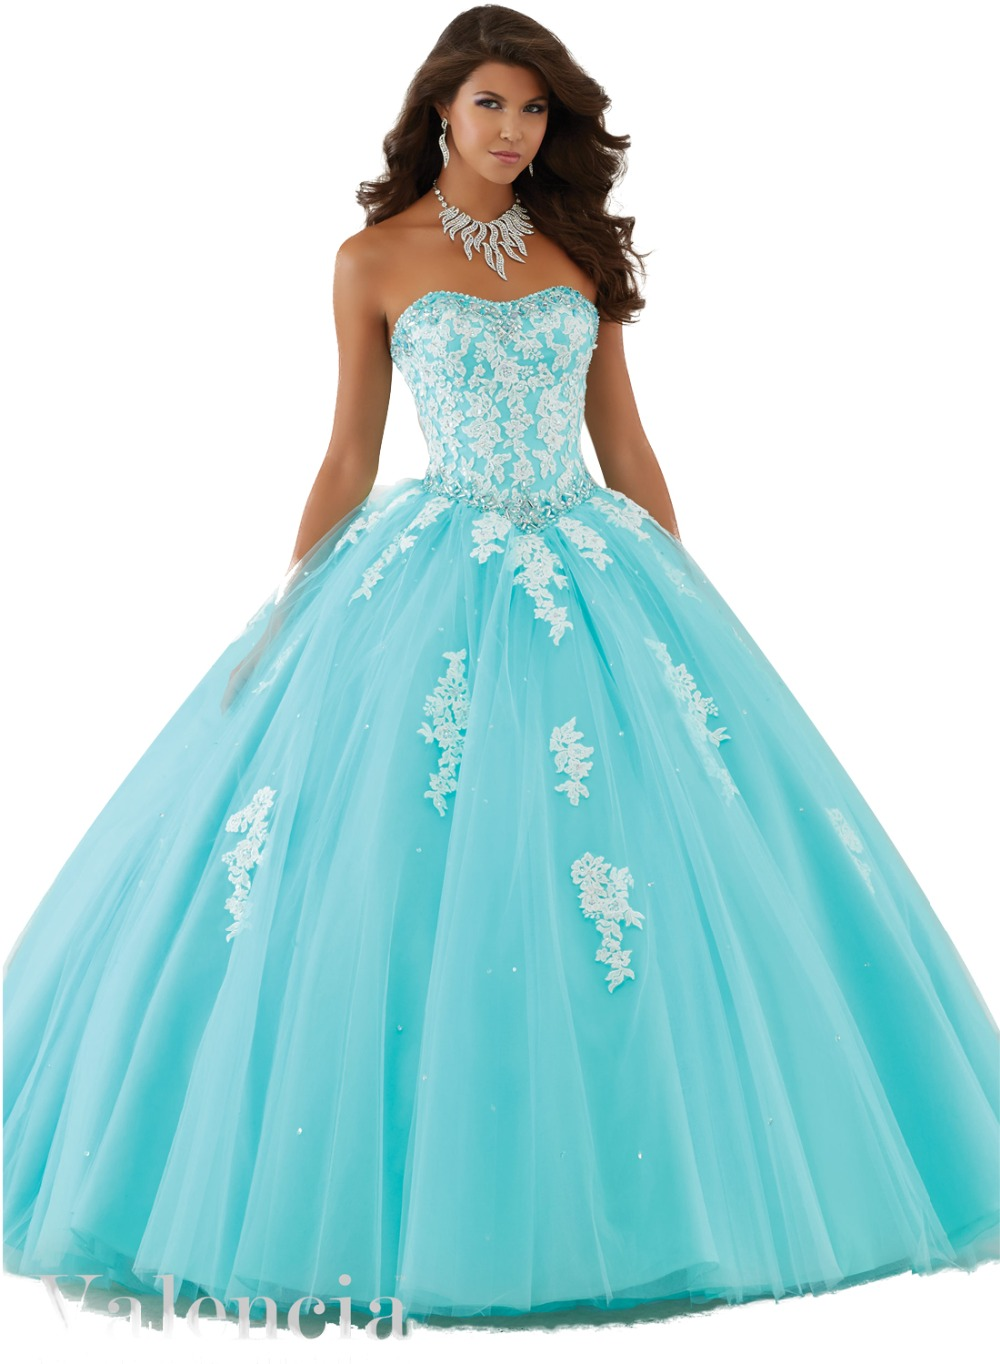 High Quality Quinceanera Dresses White and Blue-Buy Cheap ...